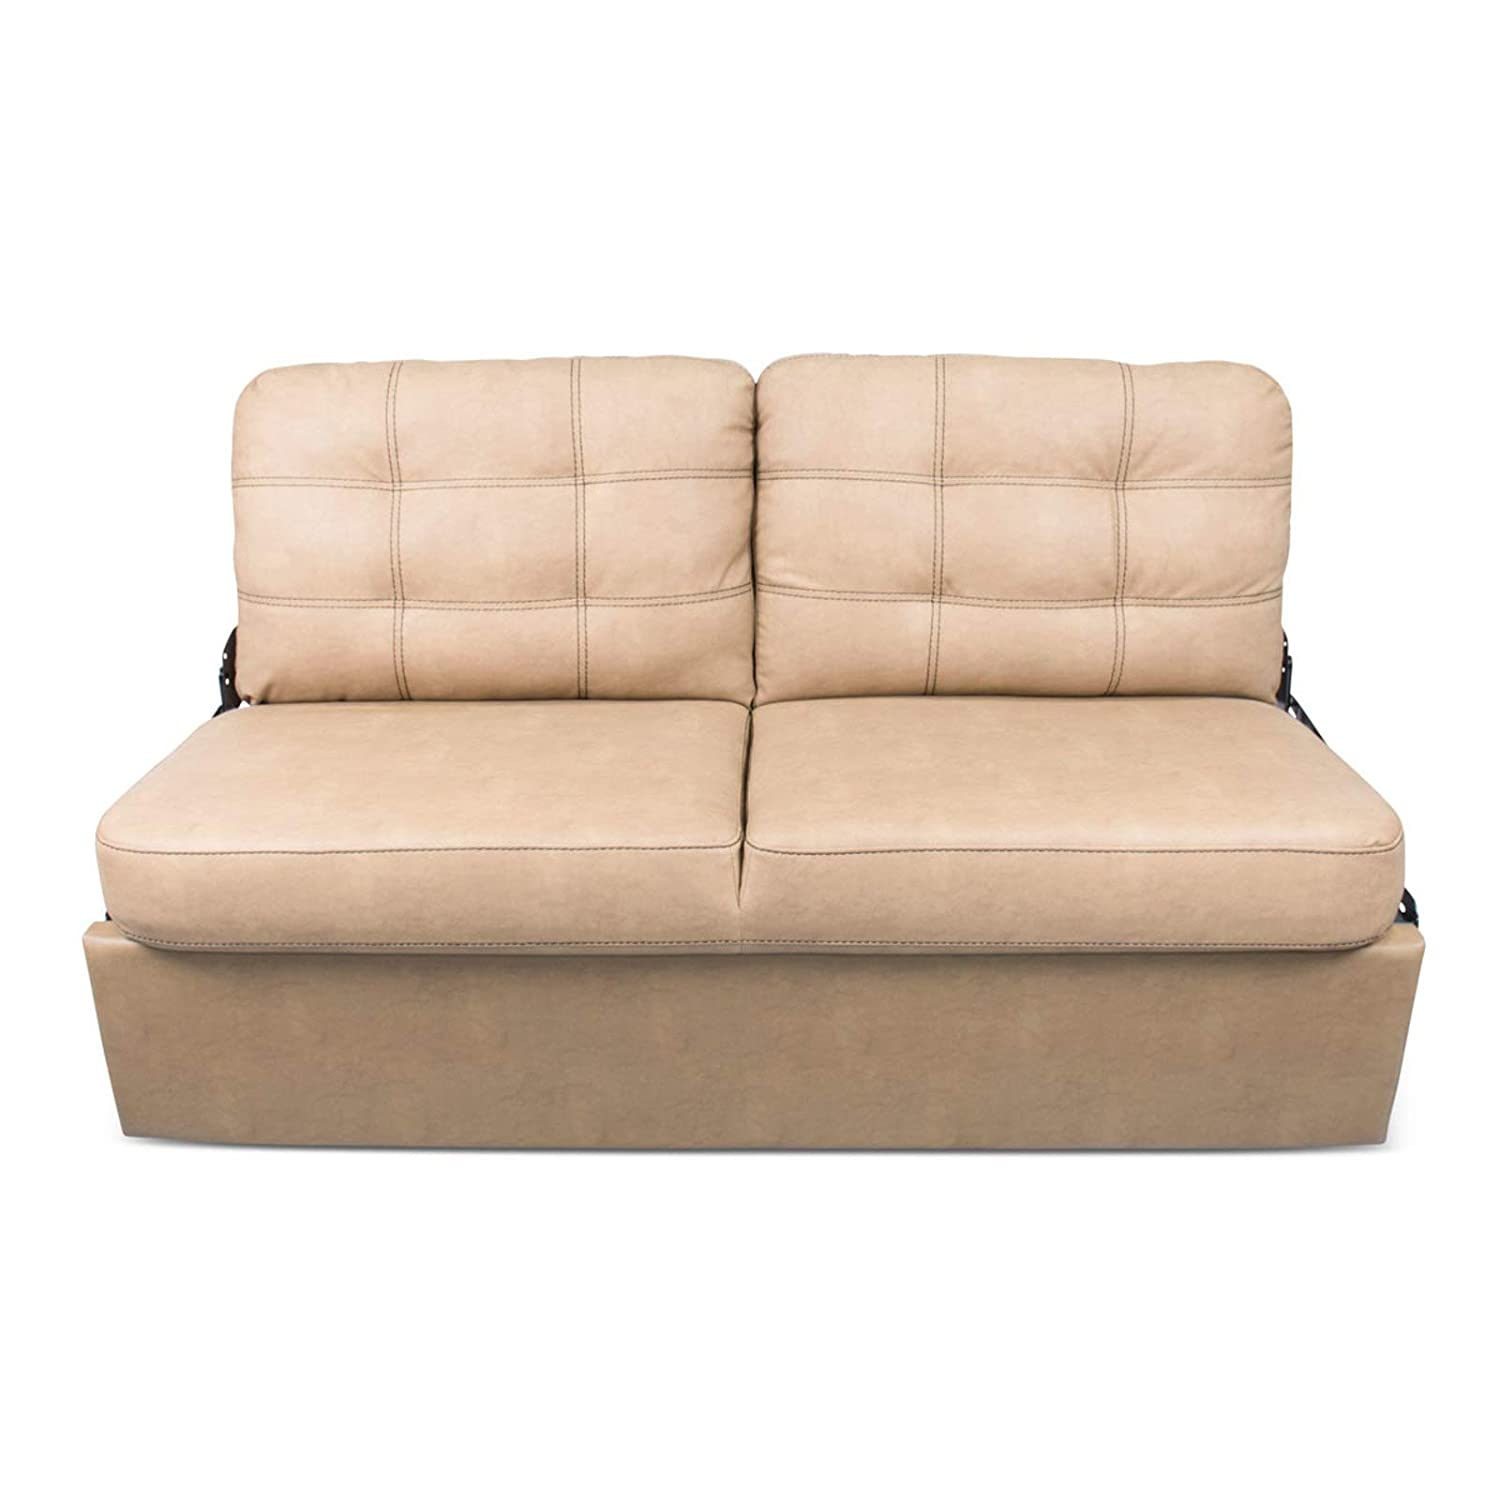 Awesome 68In Jack Knife Sofa Beckham Tan With Kickboard Pabps2019 Chair Design Images Pabps2019Com